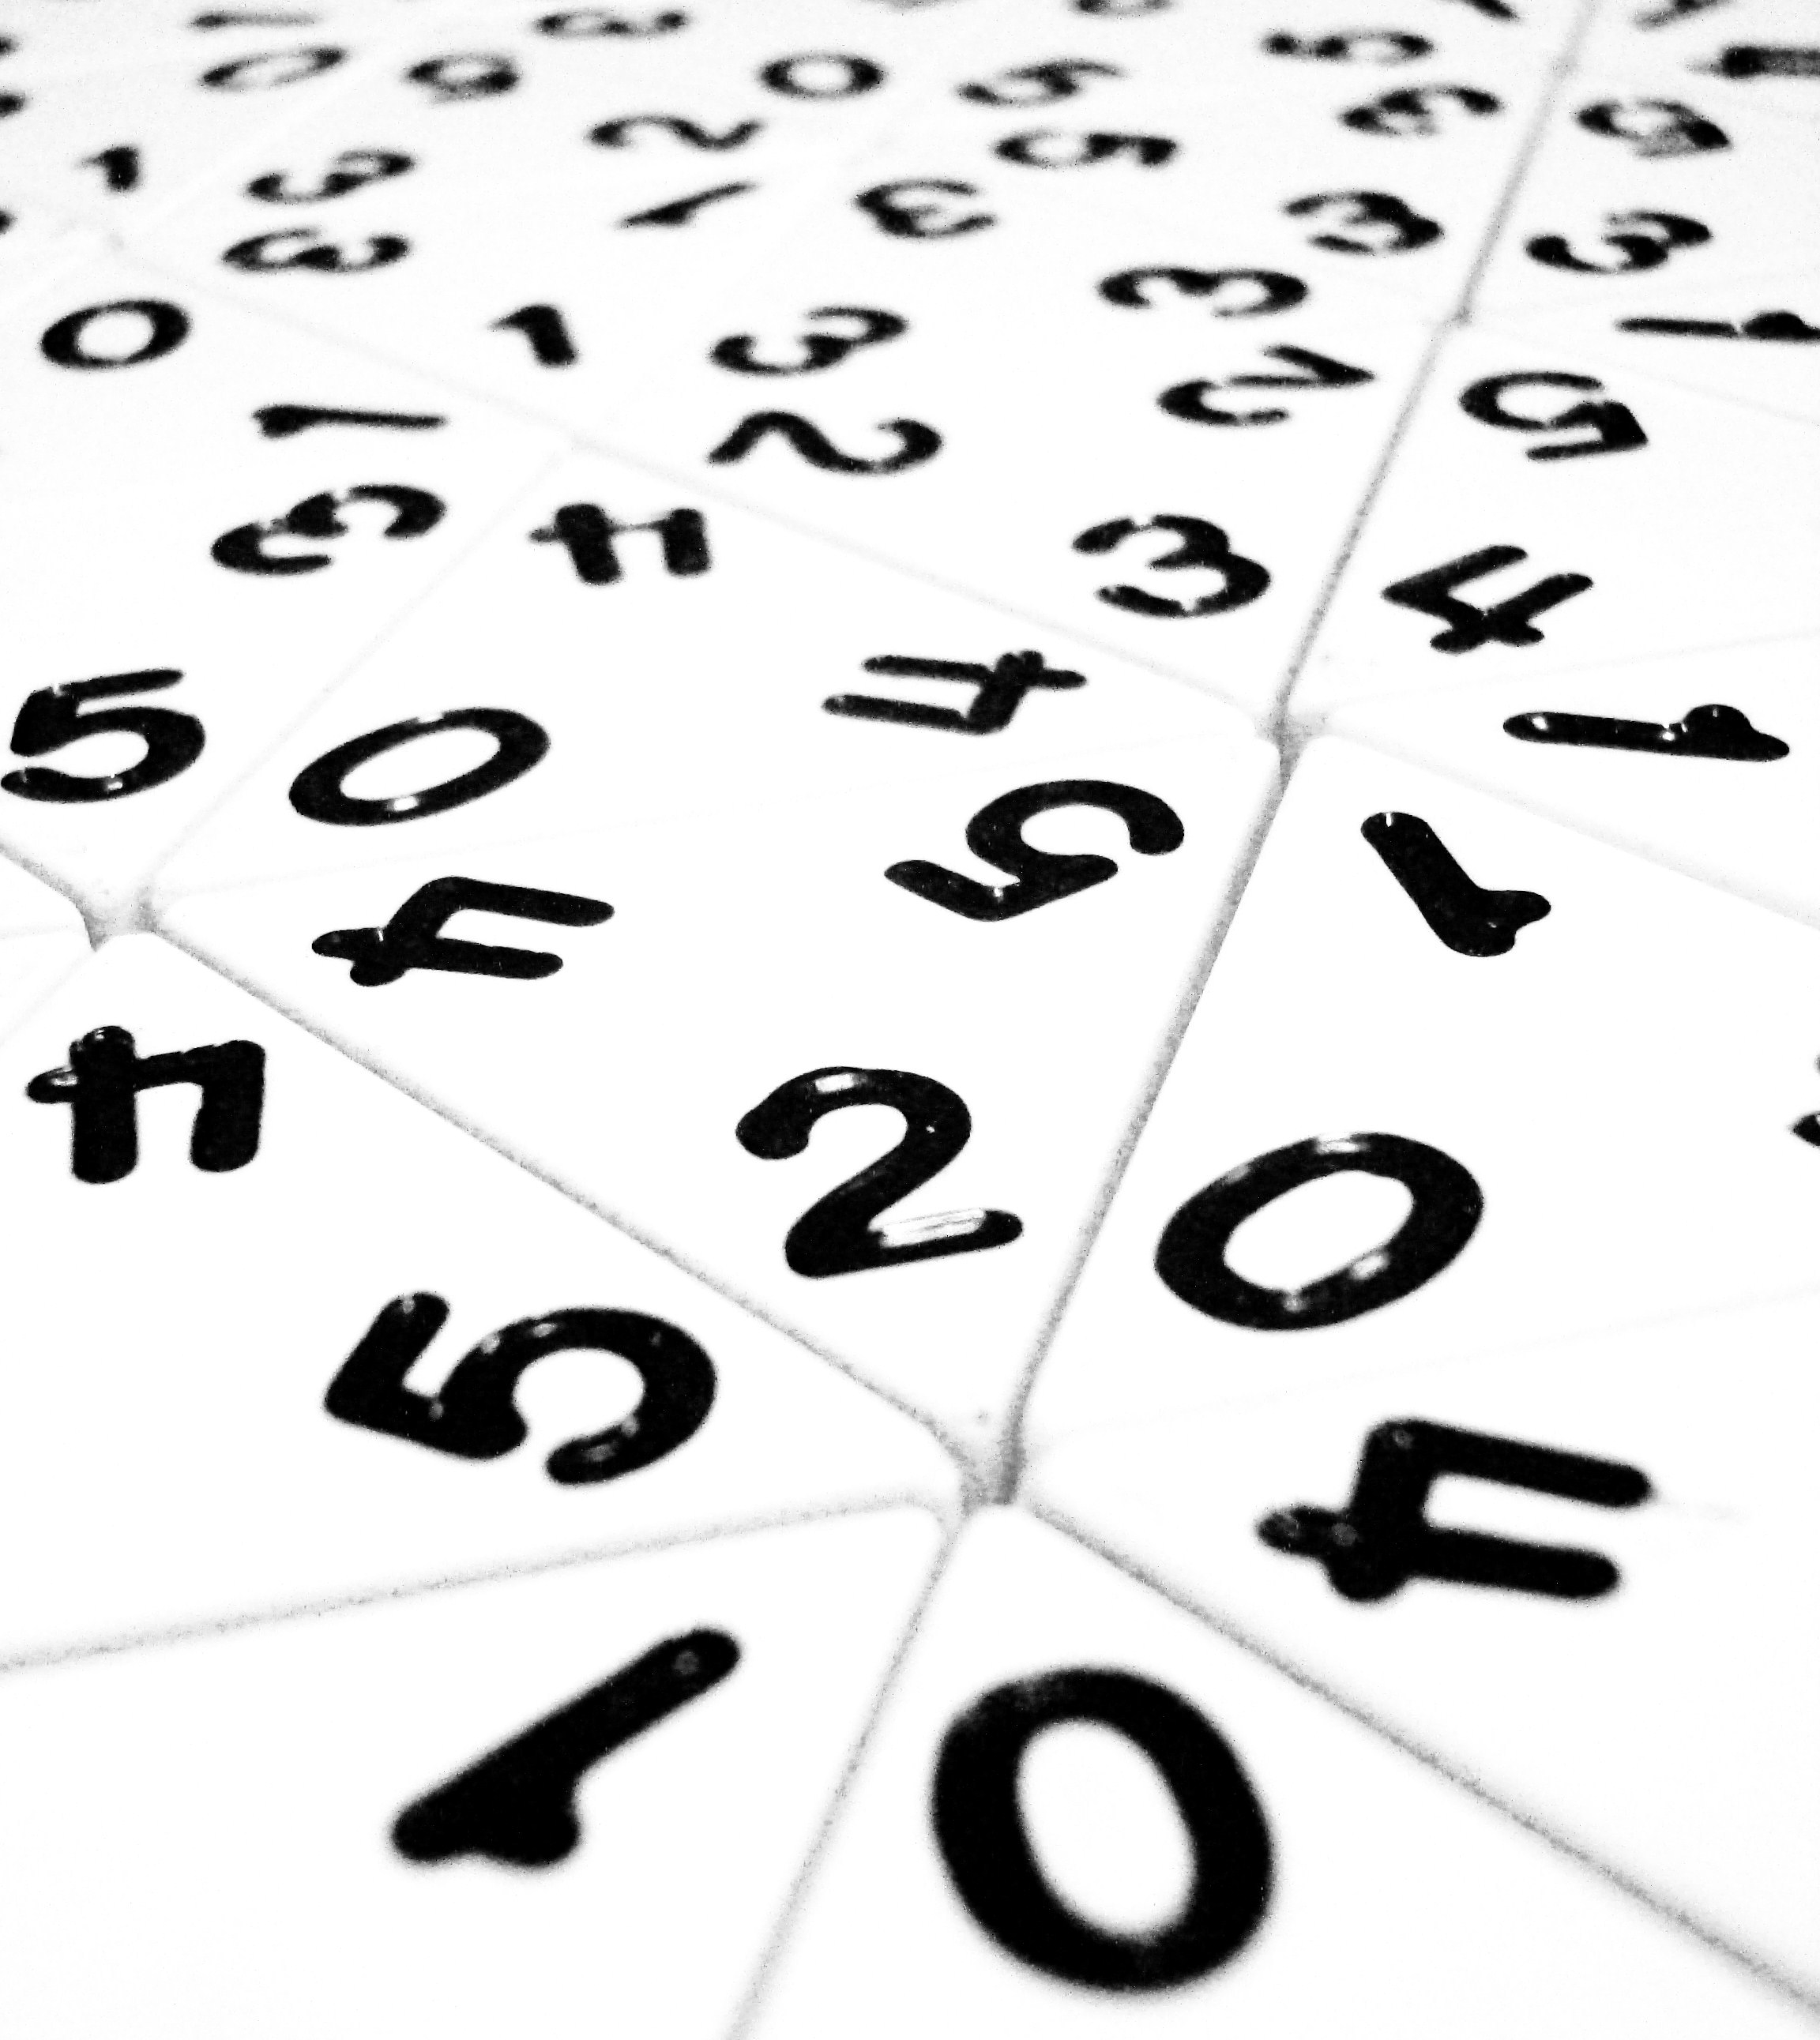 Random Numbers, Chance, Numbers, Tiles, Tile, HQ Photo